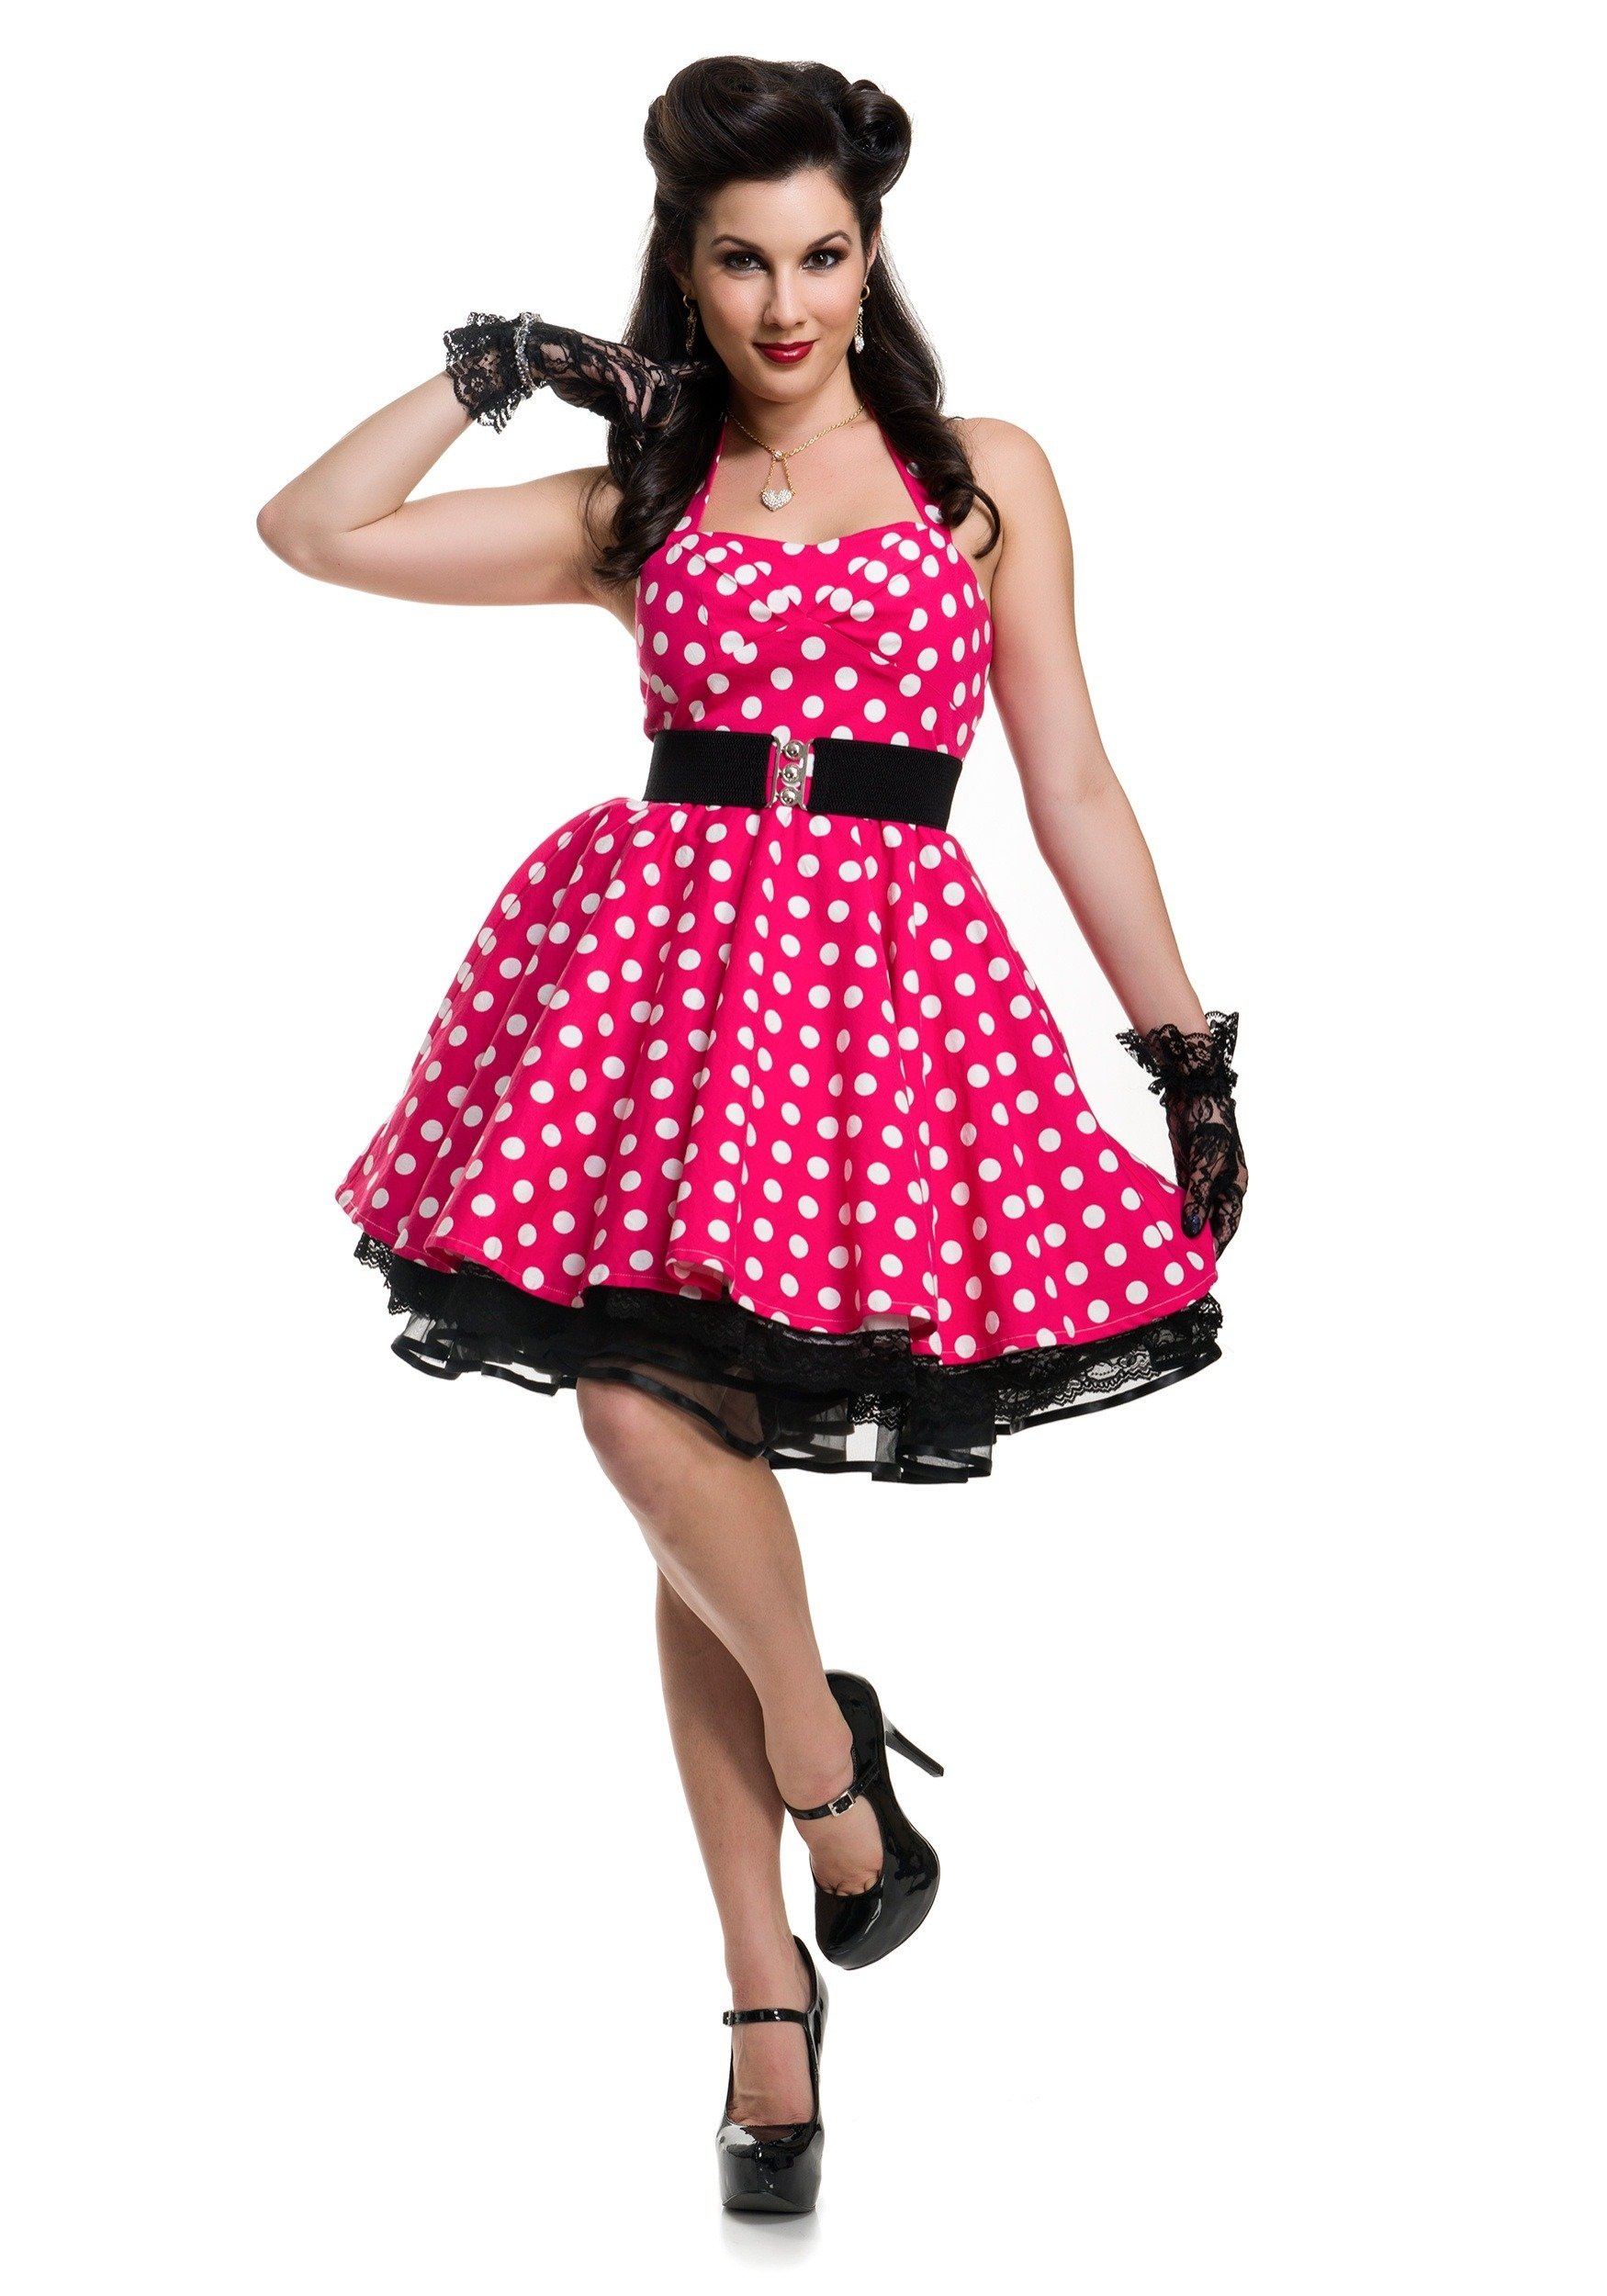 10 Nice Pin Up Girl Halloween Costume Ideas womens pink polka dot pin up costume 1 2020